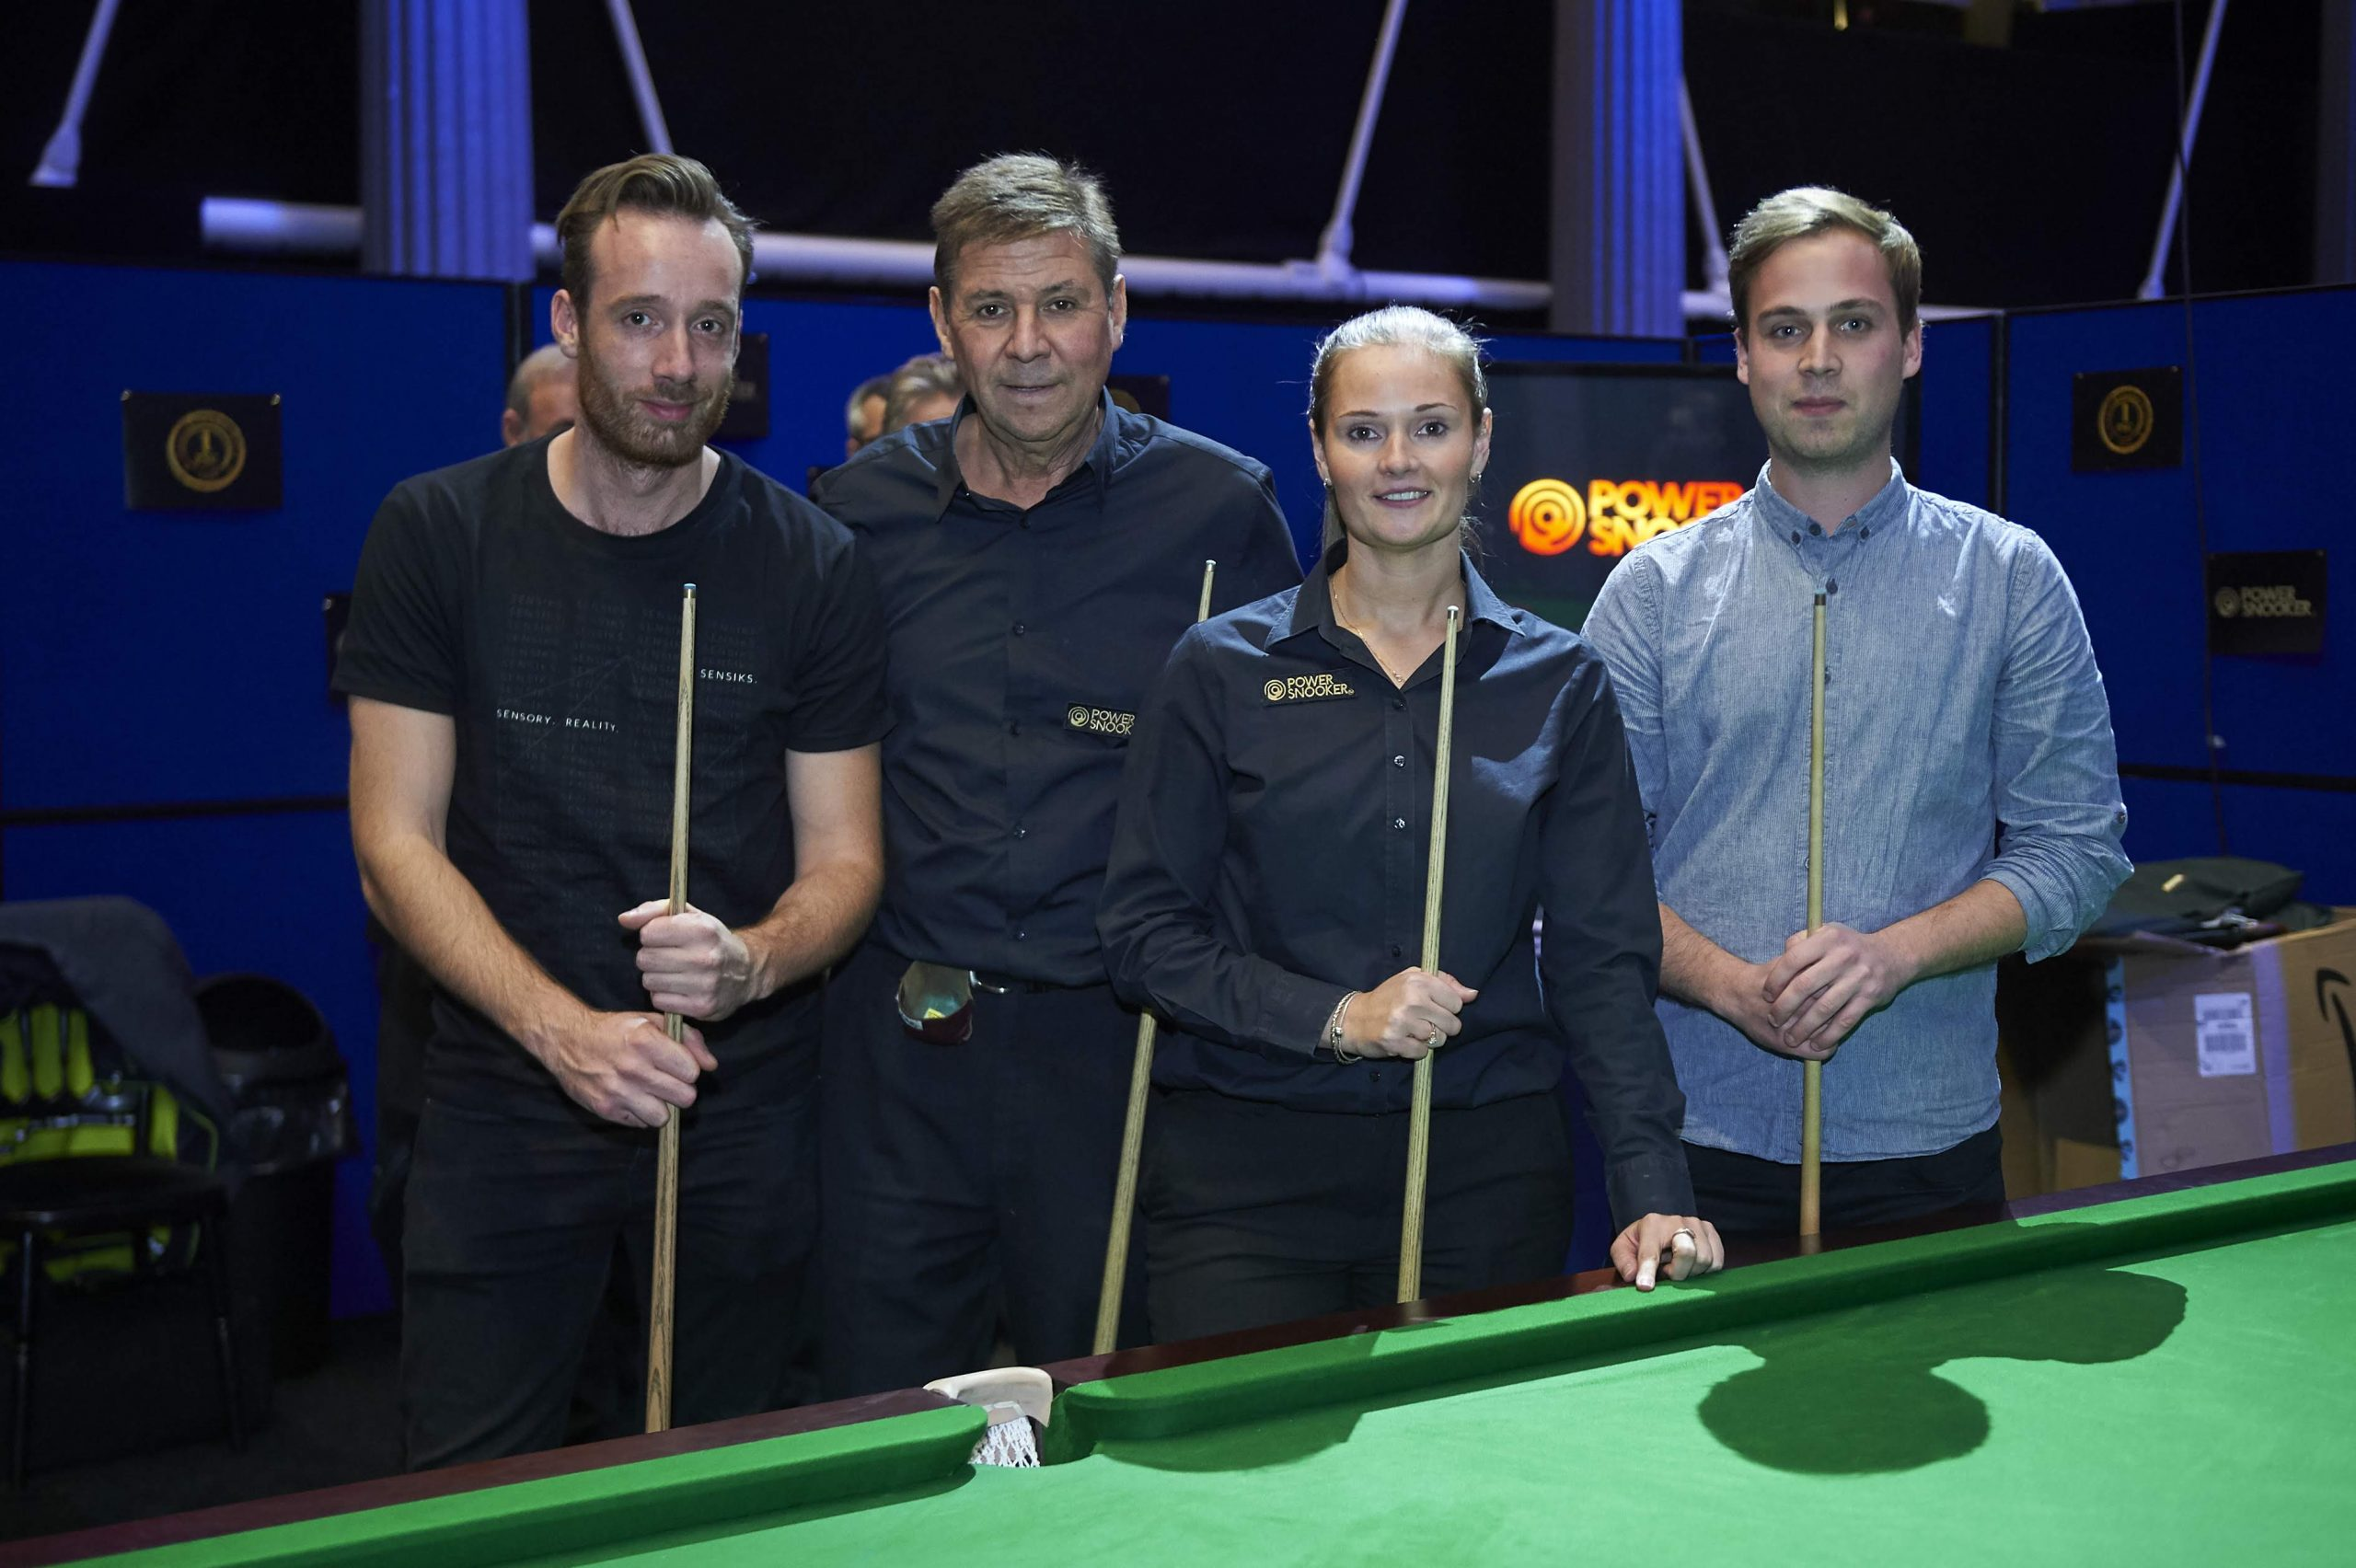 How Power Snooker plans to change and complement today's snooker world